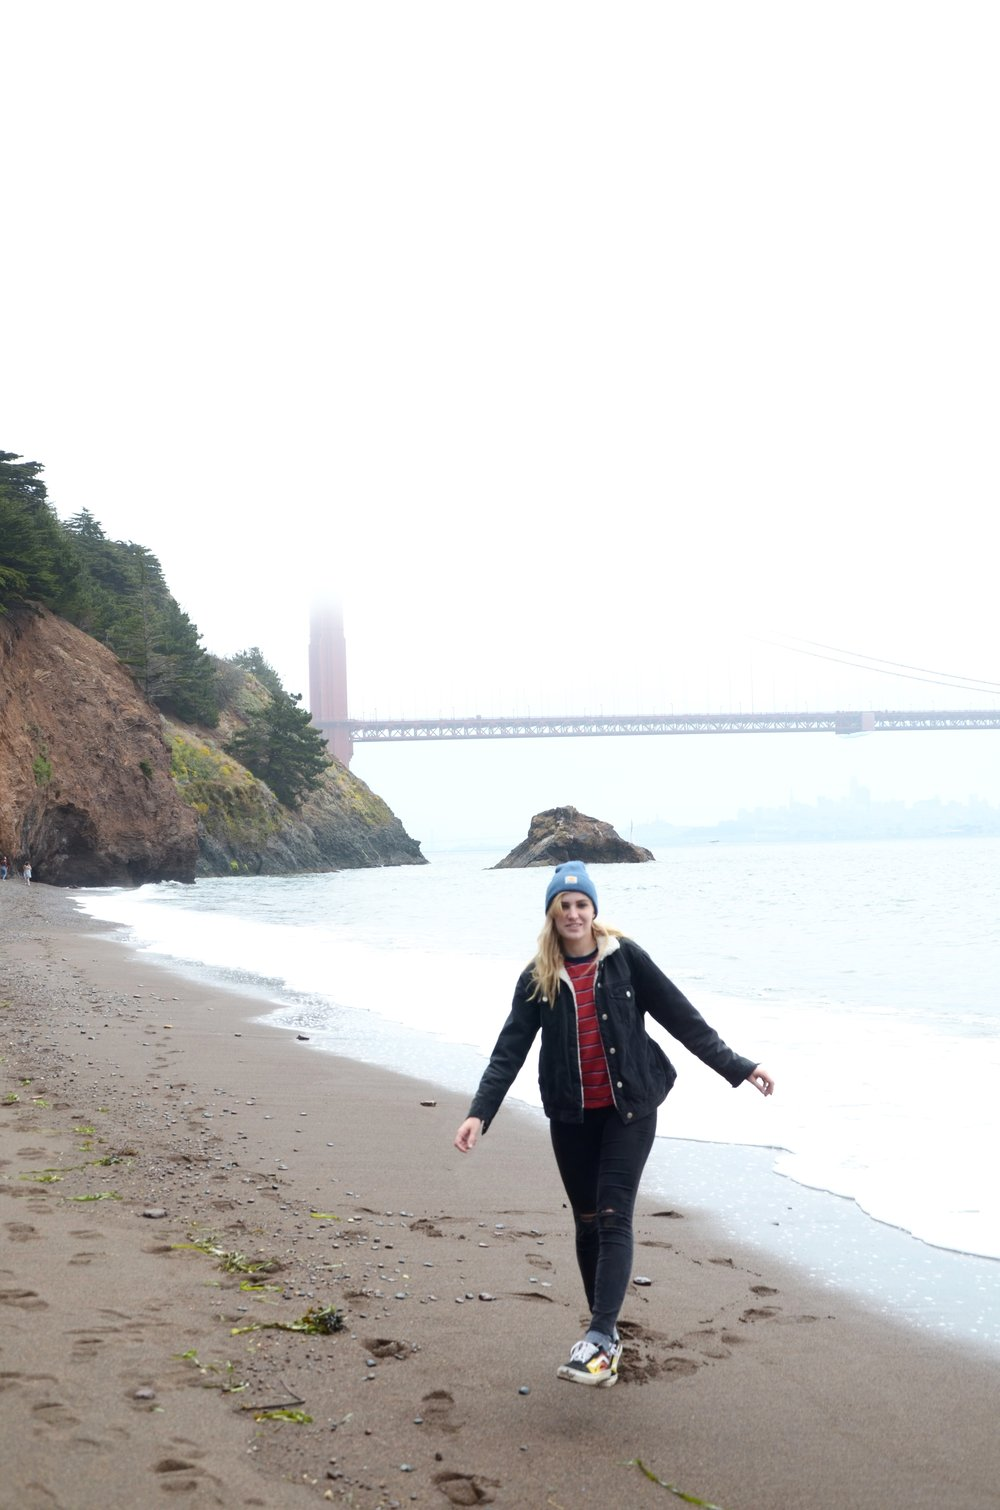 GGB at Kirby Cove.